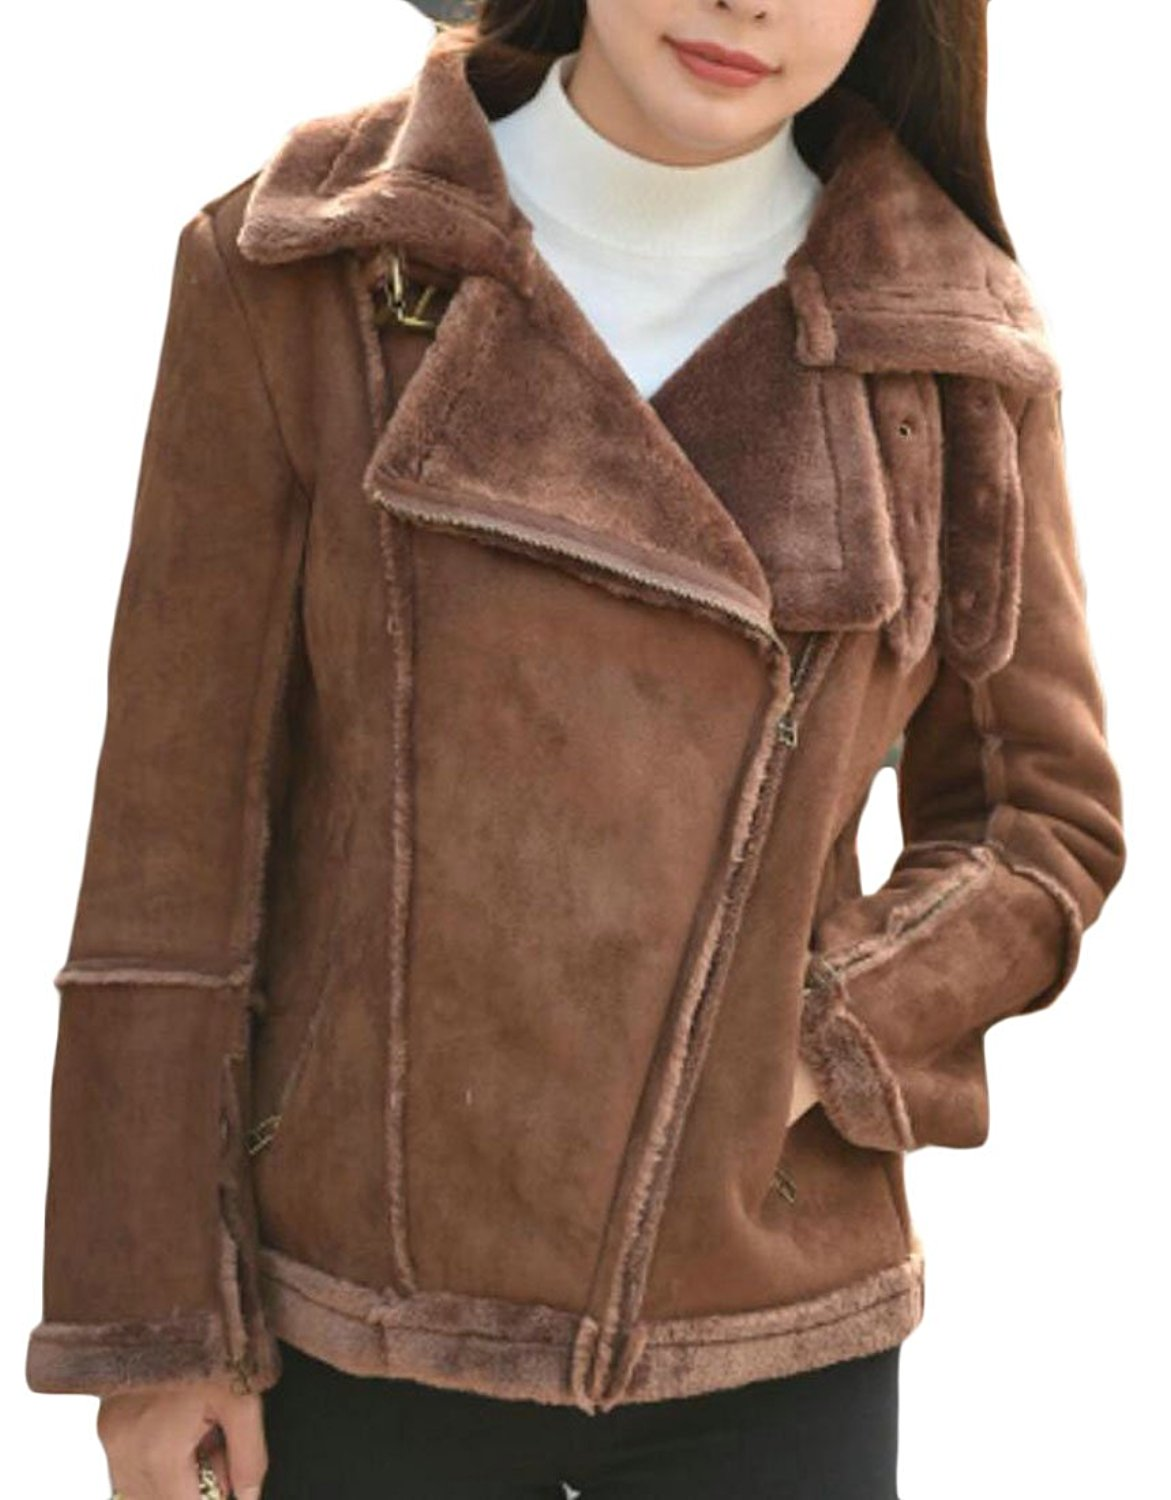 1795f6ed0a8e6 Get Quotations · CRYYU Women s Winter Plus Size Faux Shearling Suede Jacket  Coat